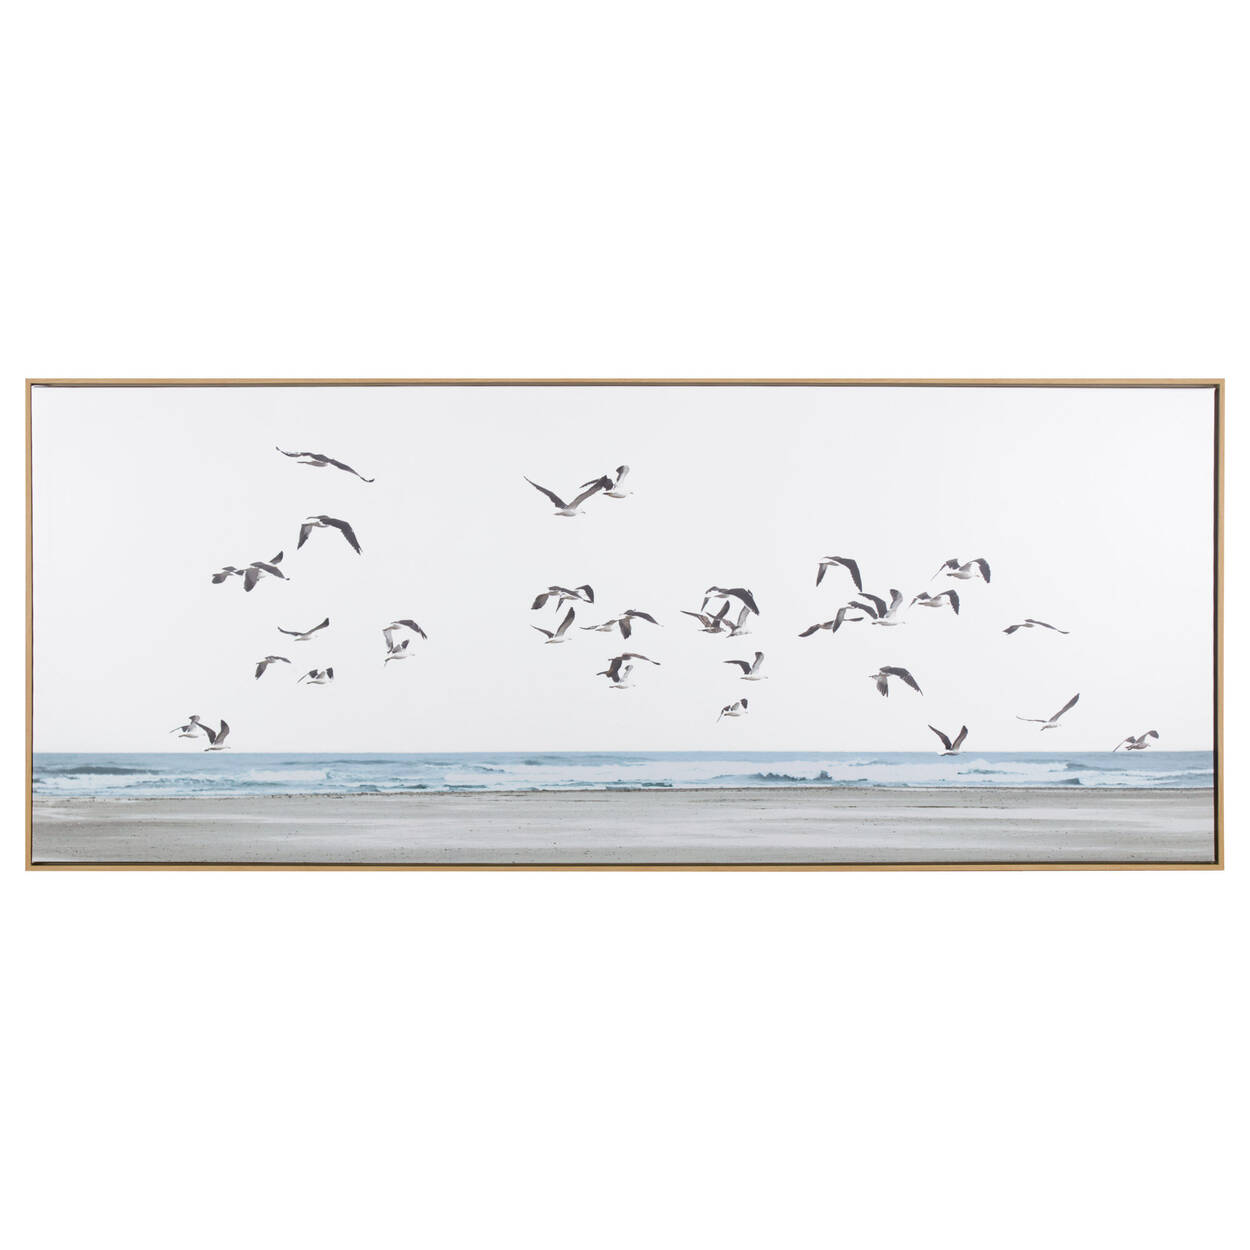 Flock of Seagulls Framed Art